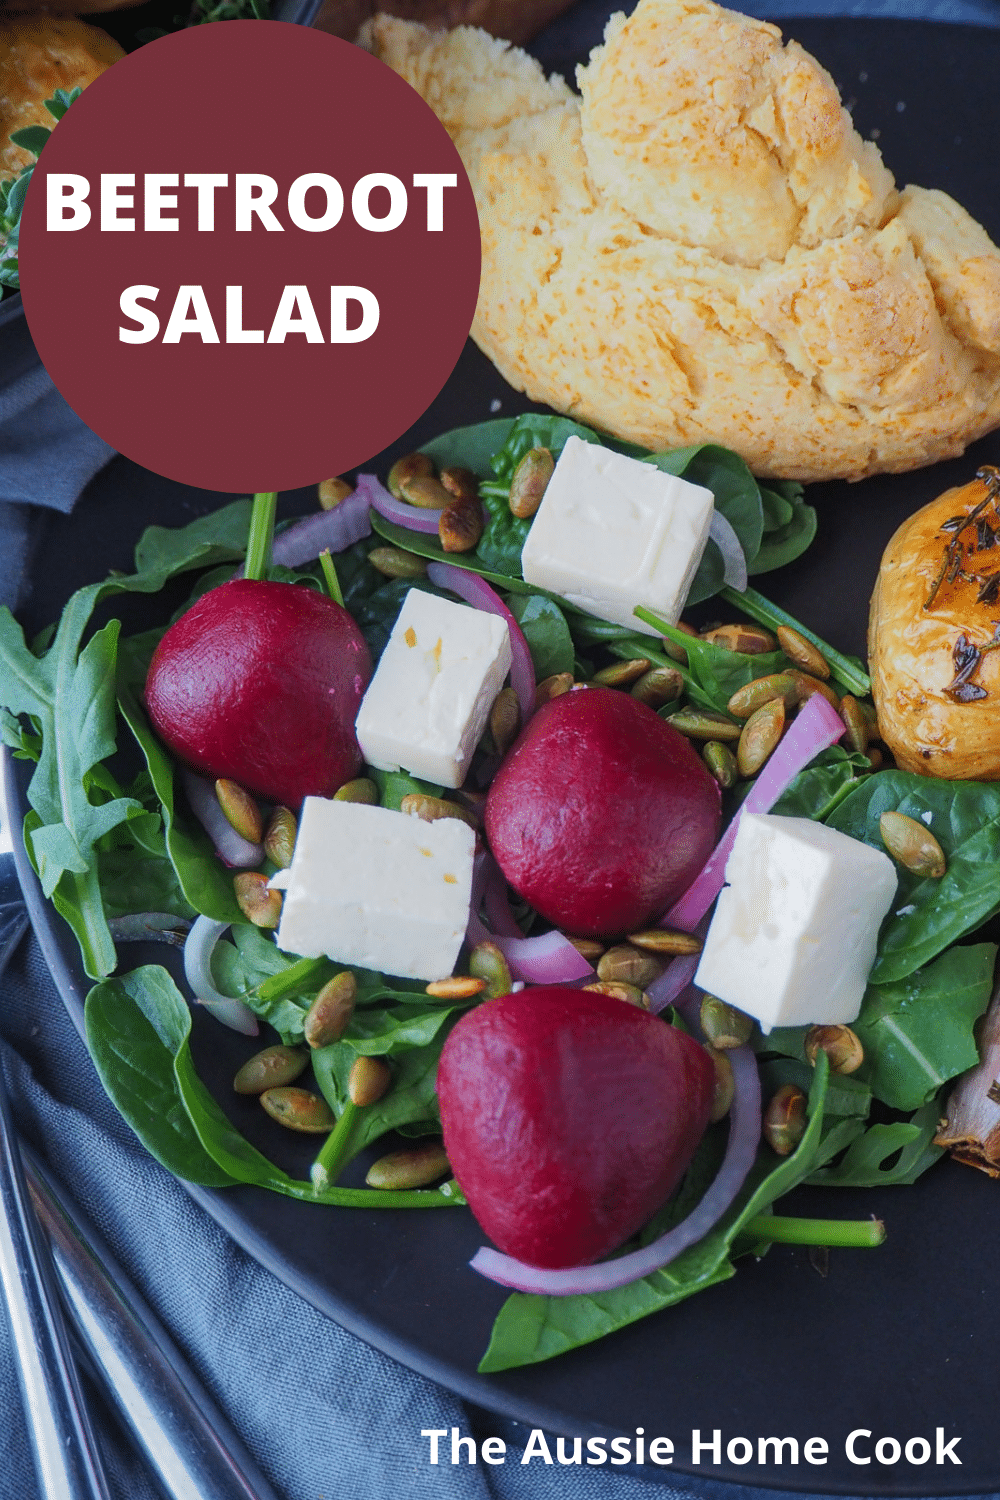 Beetroot salad on a plate, with damper and roasted mini potatoes on the side, with text overlay, beetroot salad, The Aussie Home Cook.